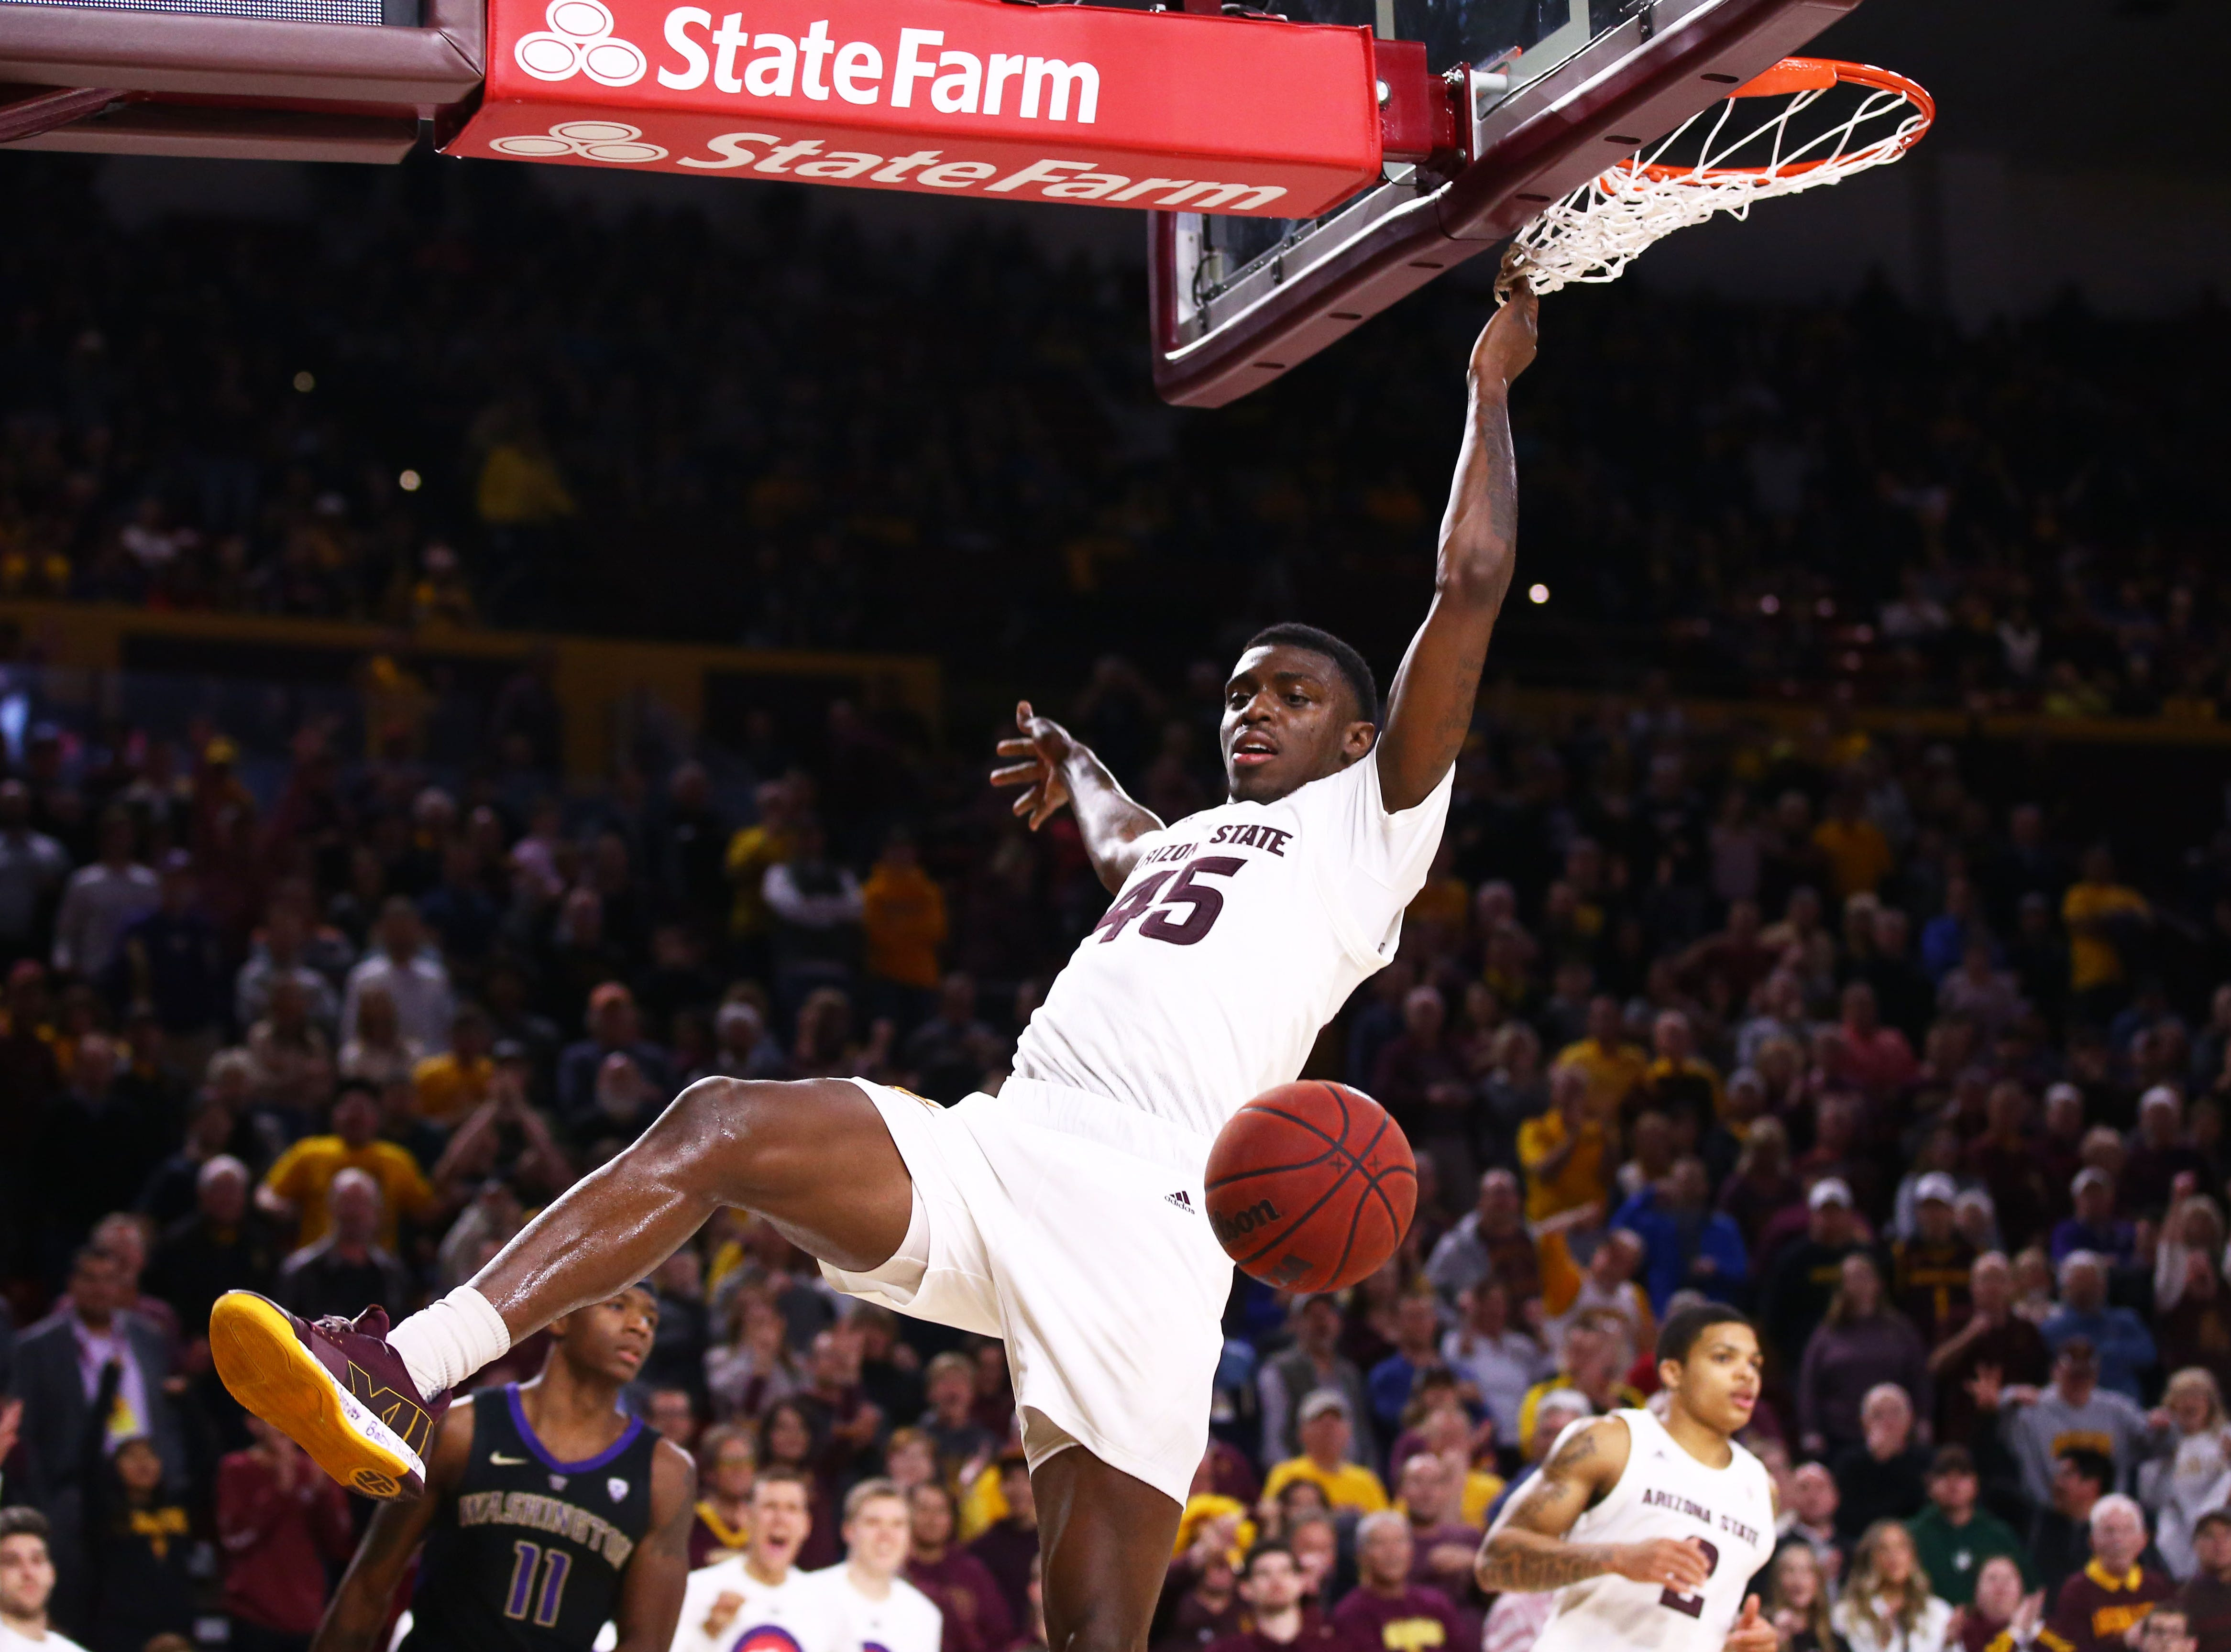 Arizona State Sun Devils forward Zylan Cheatham drives to the basket and dunks the ball against the Washington Huskies in the second half on Feb. 9 at Wells Fargo Arena in Tempe.